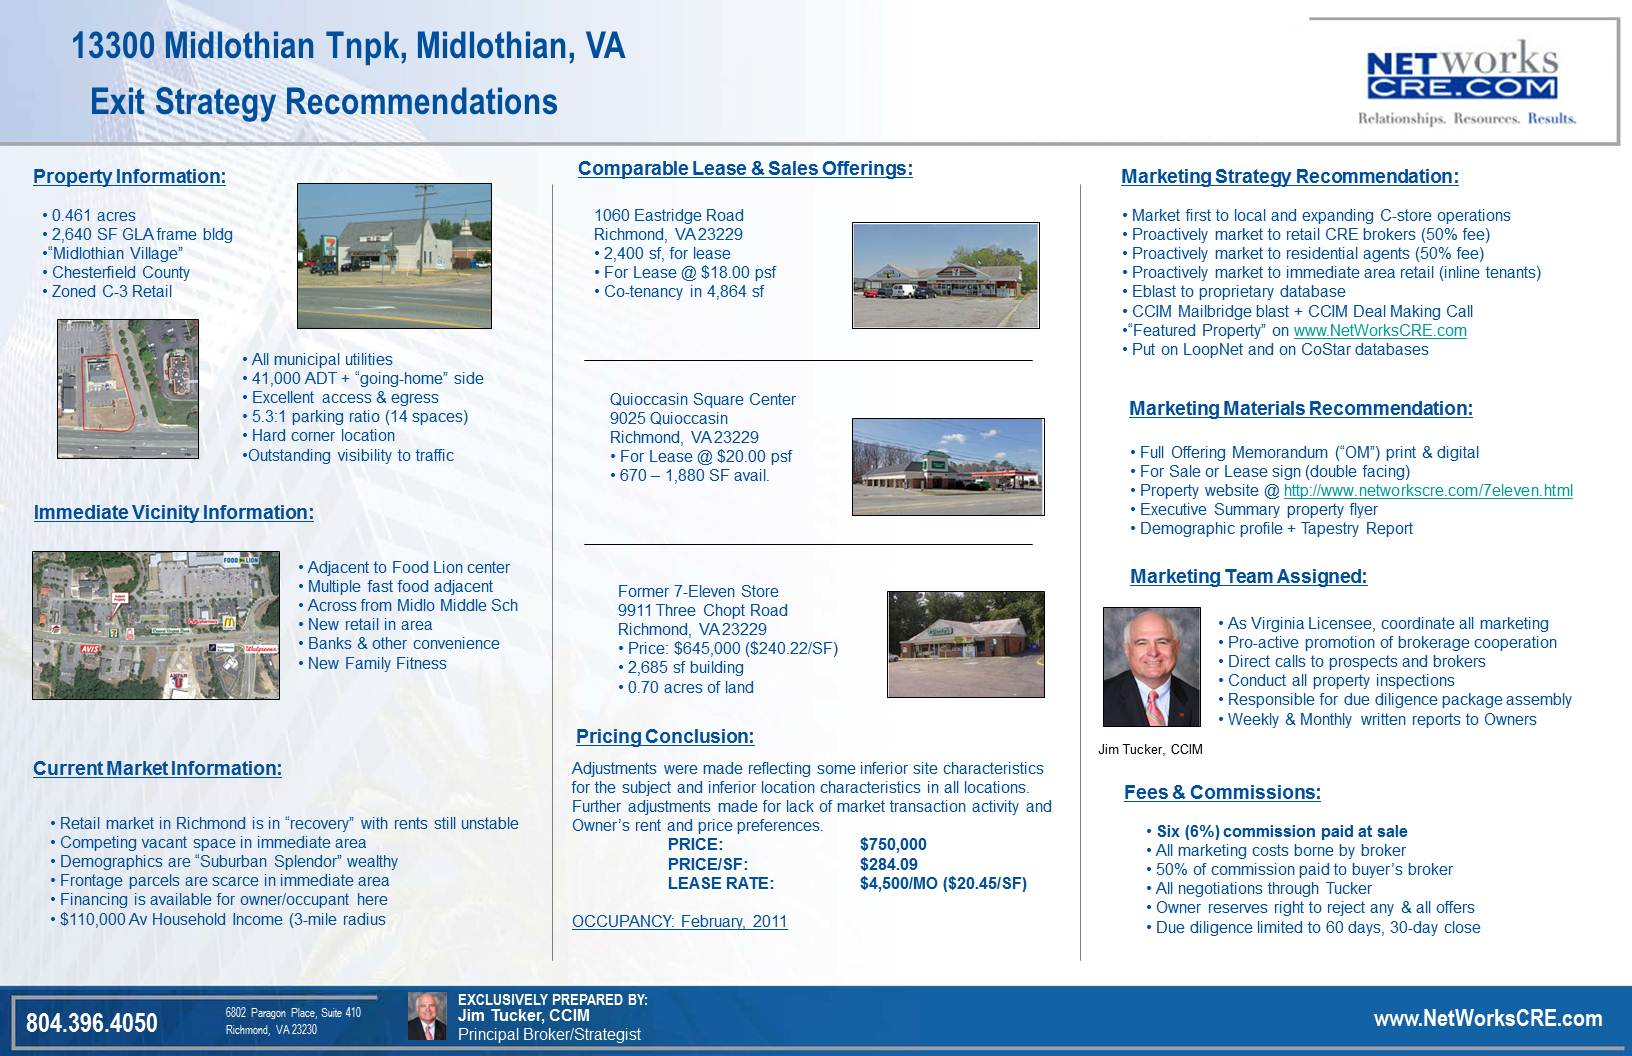 Placemat Commercial Real Estate Investment Advisor